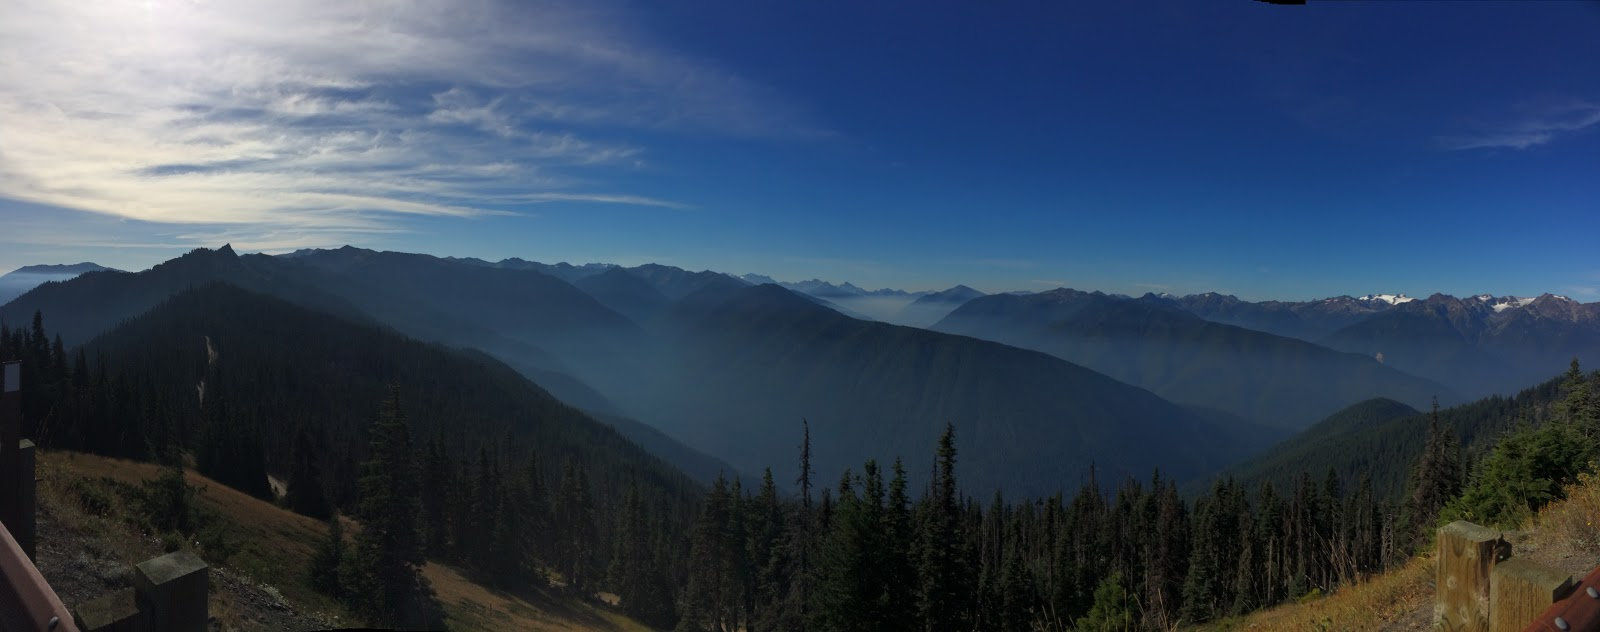 Riding our bike on Hurricane Ridge in Olympic National Park